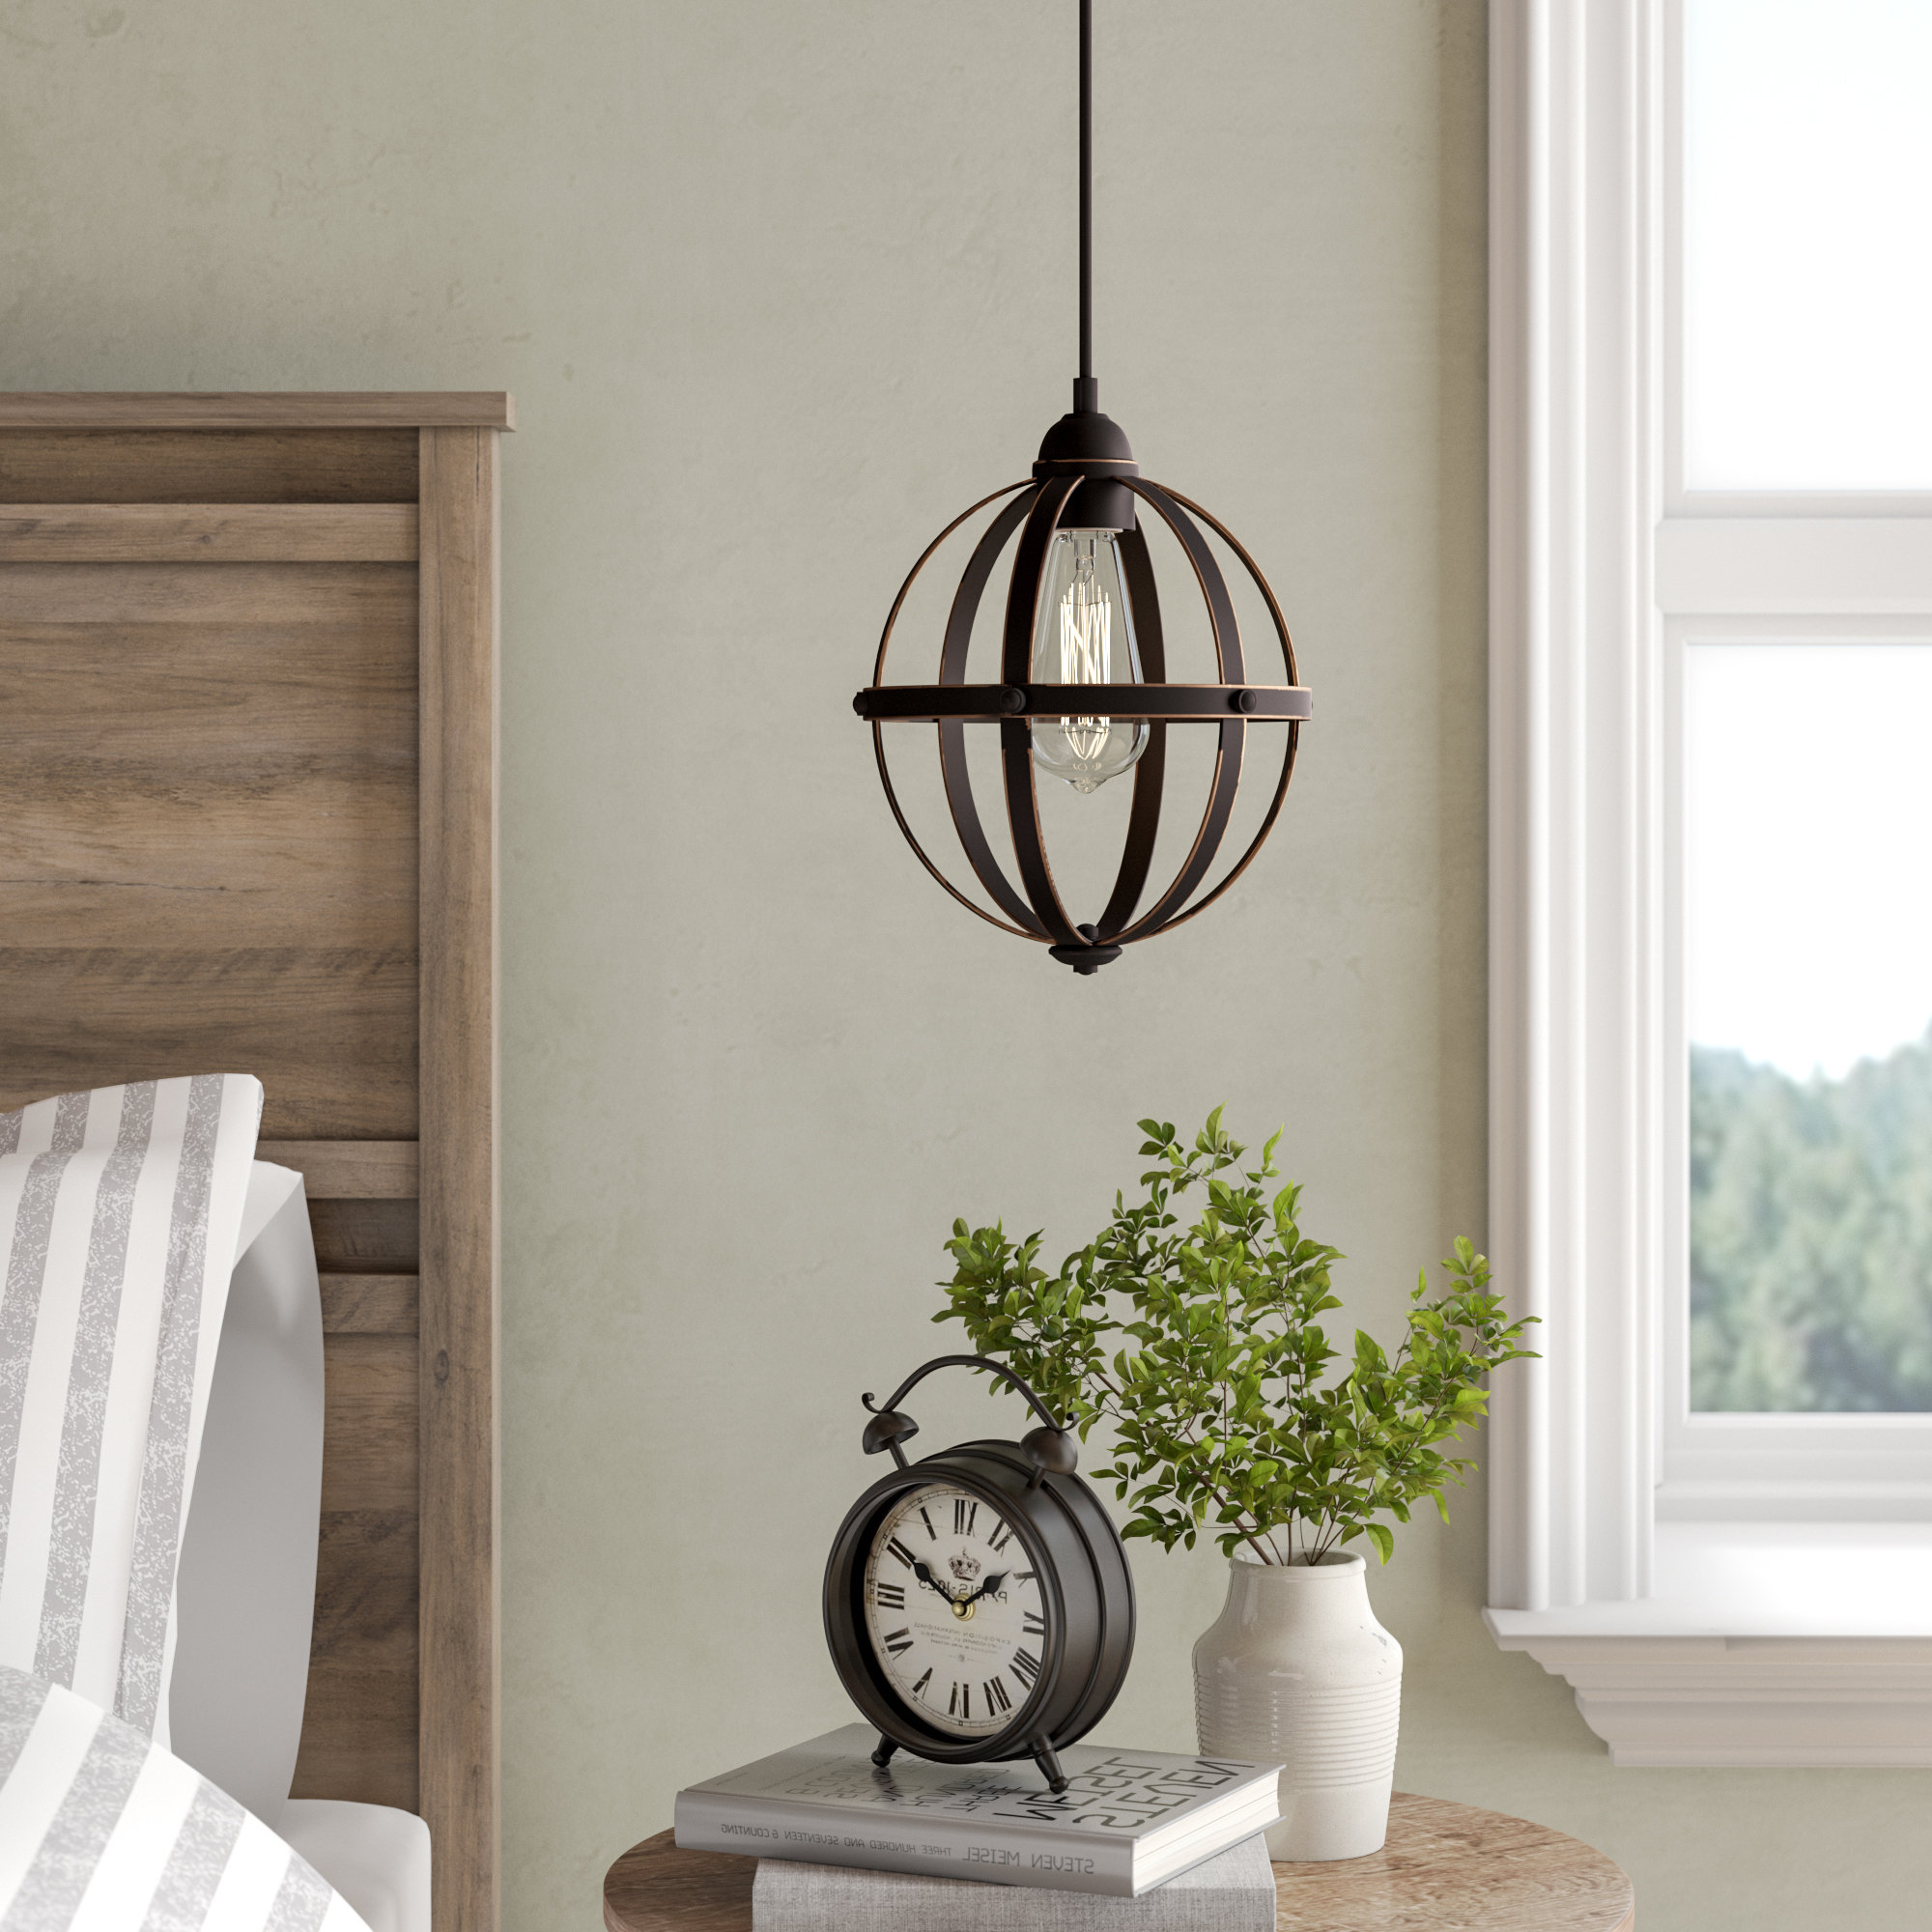 Irwin 1 Light Single Globe Pendants With Regard To 2020 Genna 1 Light Single Globe Pendant (View 8 of 20)